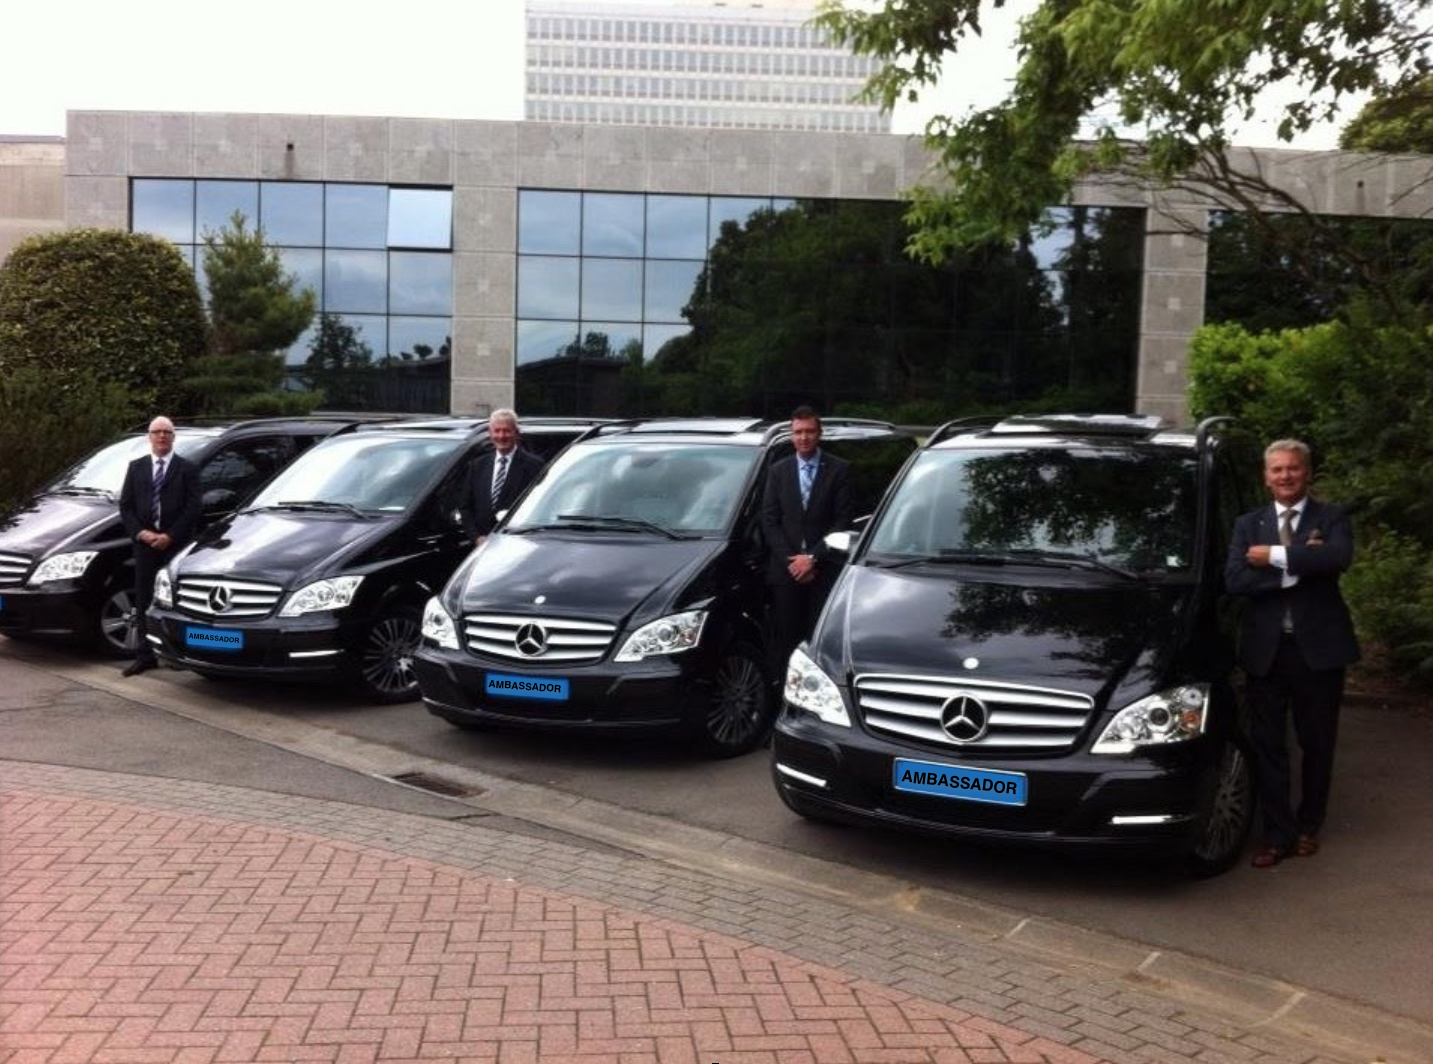 Minivan group